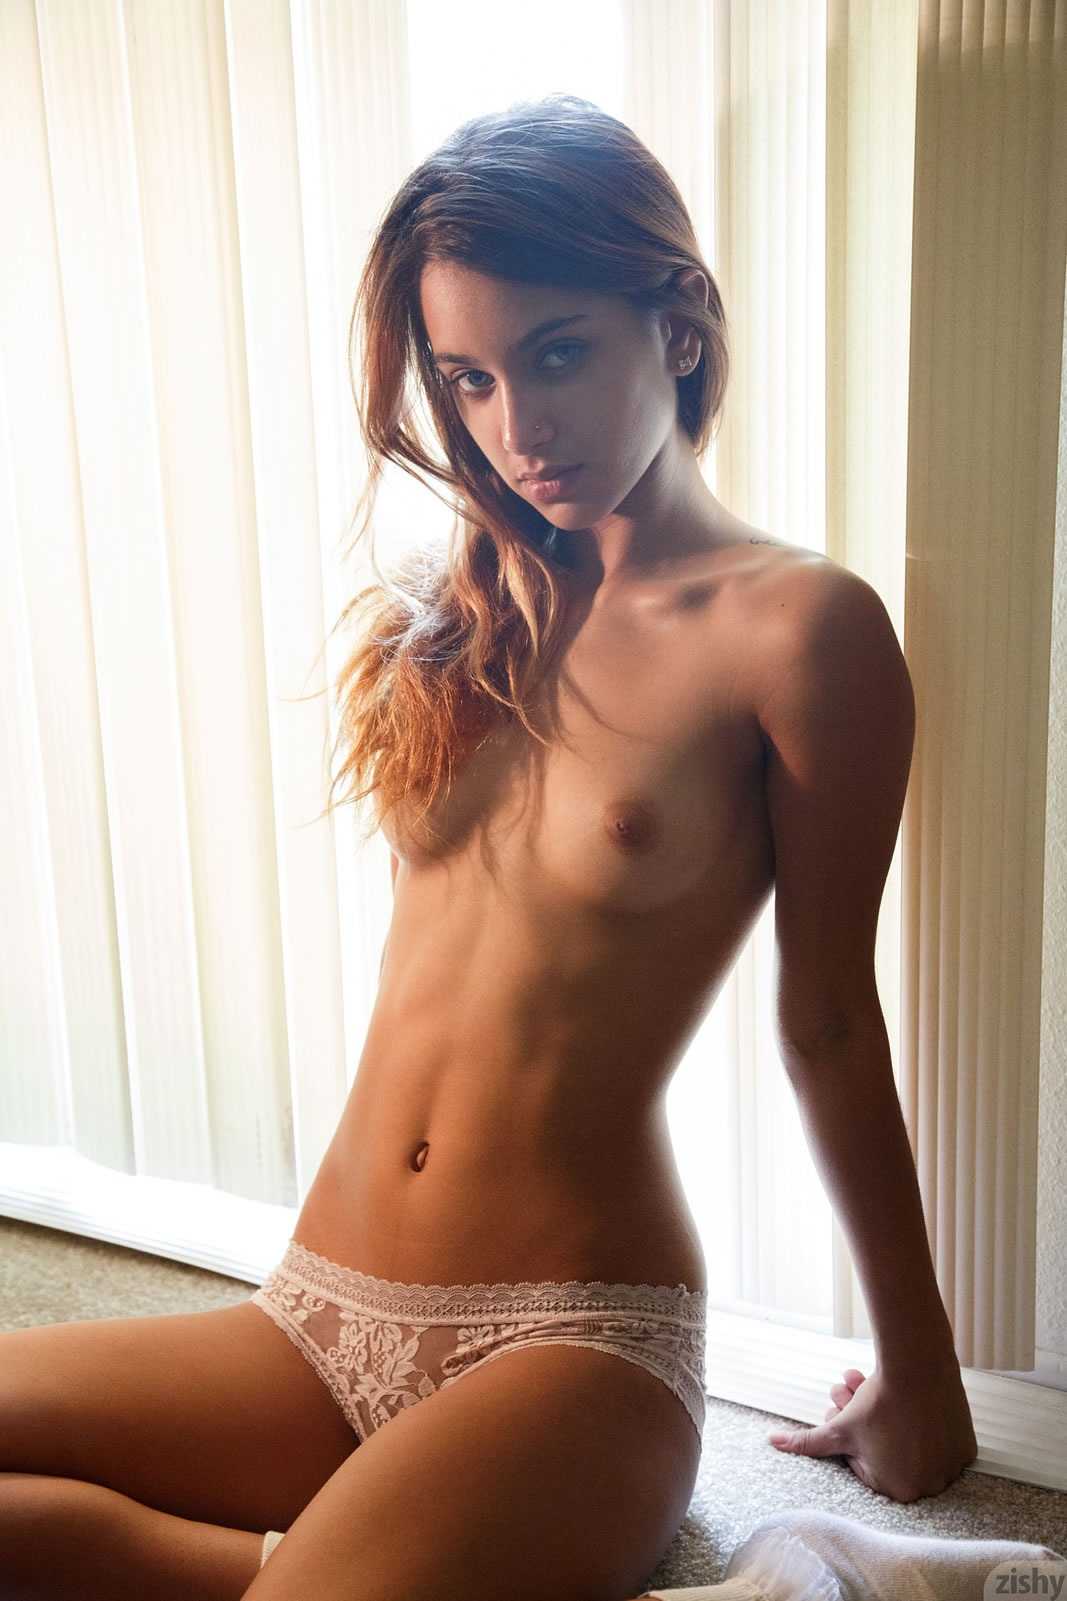 Uma Jolie has a tight body.jpg